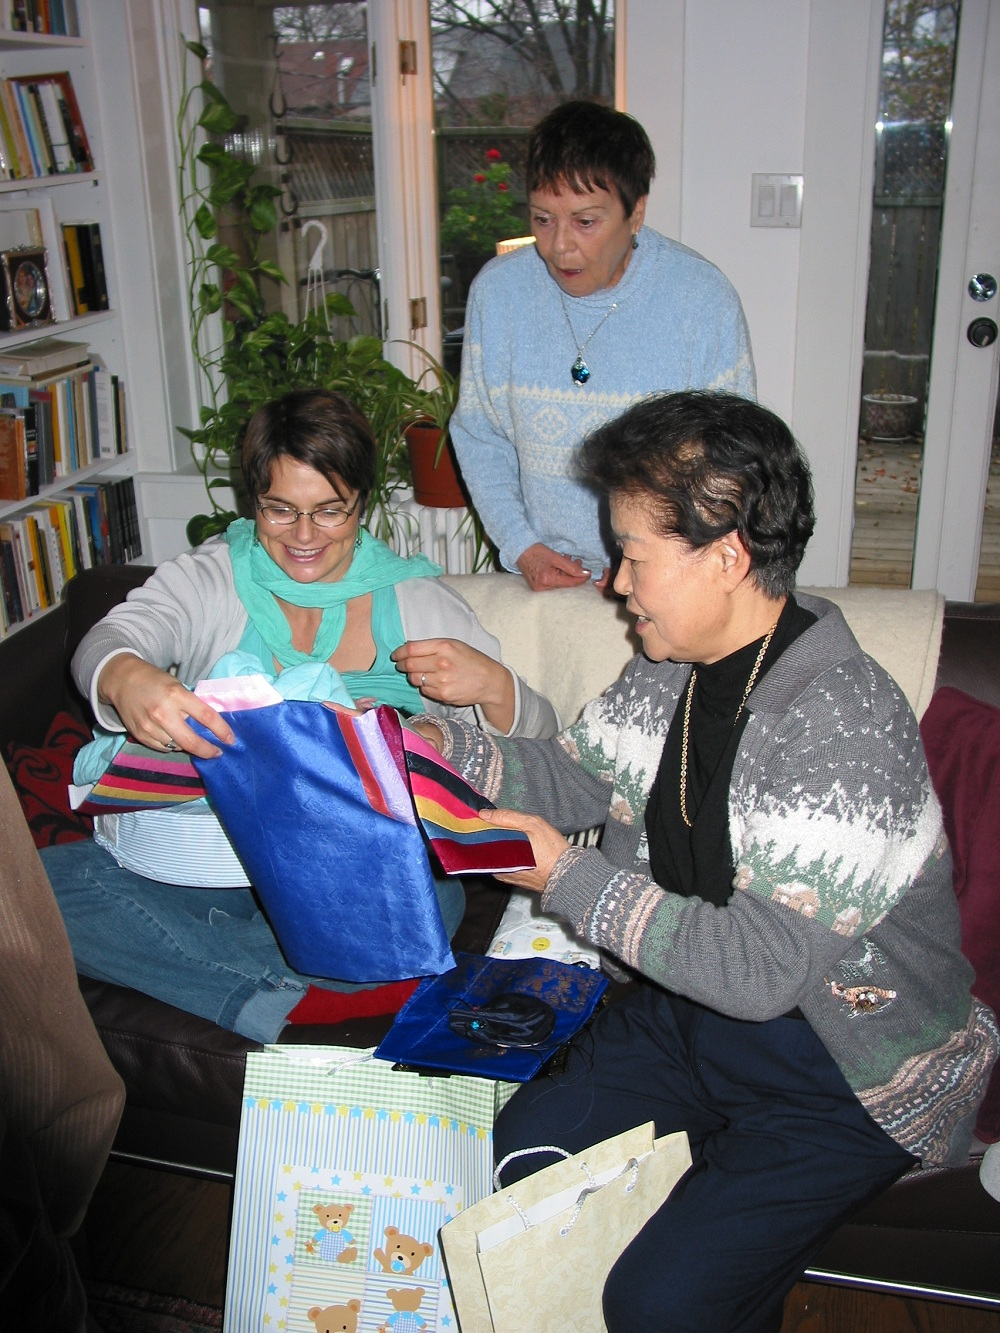 My mother exclaiming over my son's traditional Korean first year outfit in 2006; she died less than two years later, last day of August 2008.